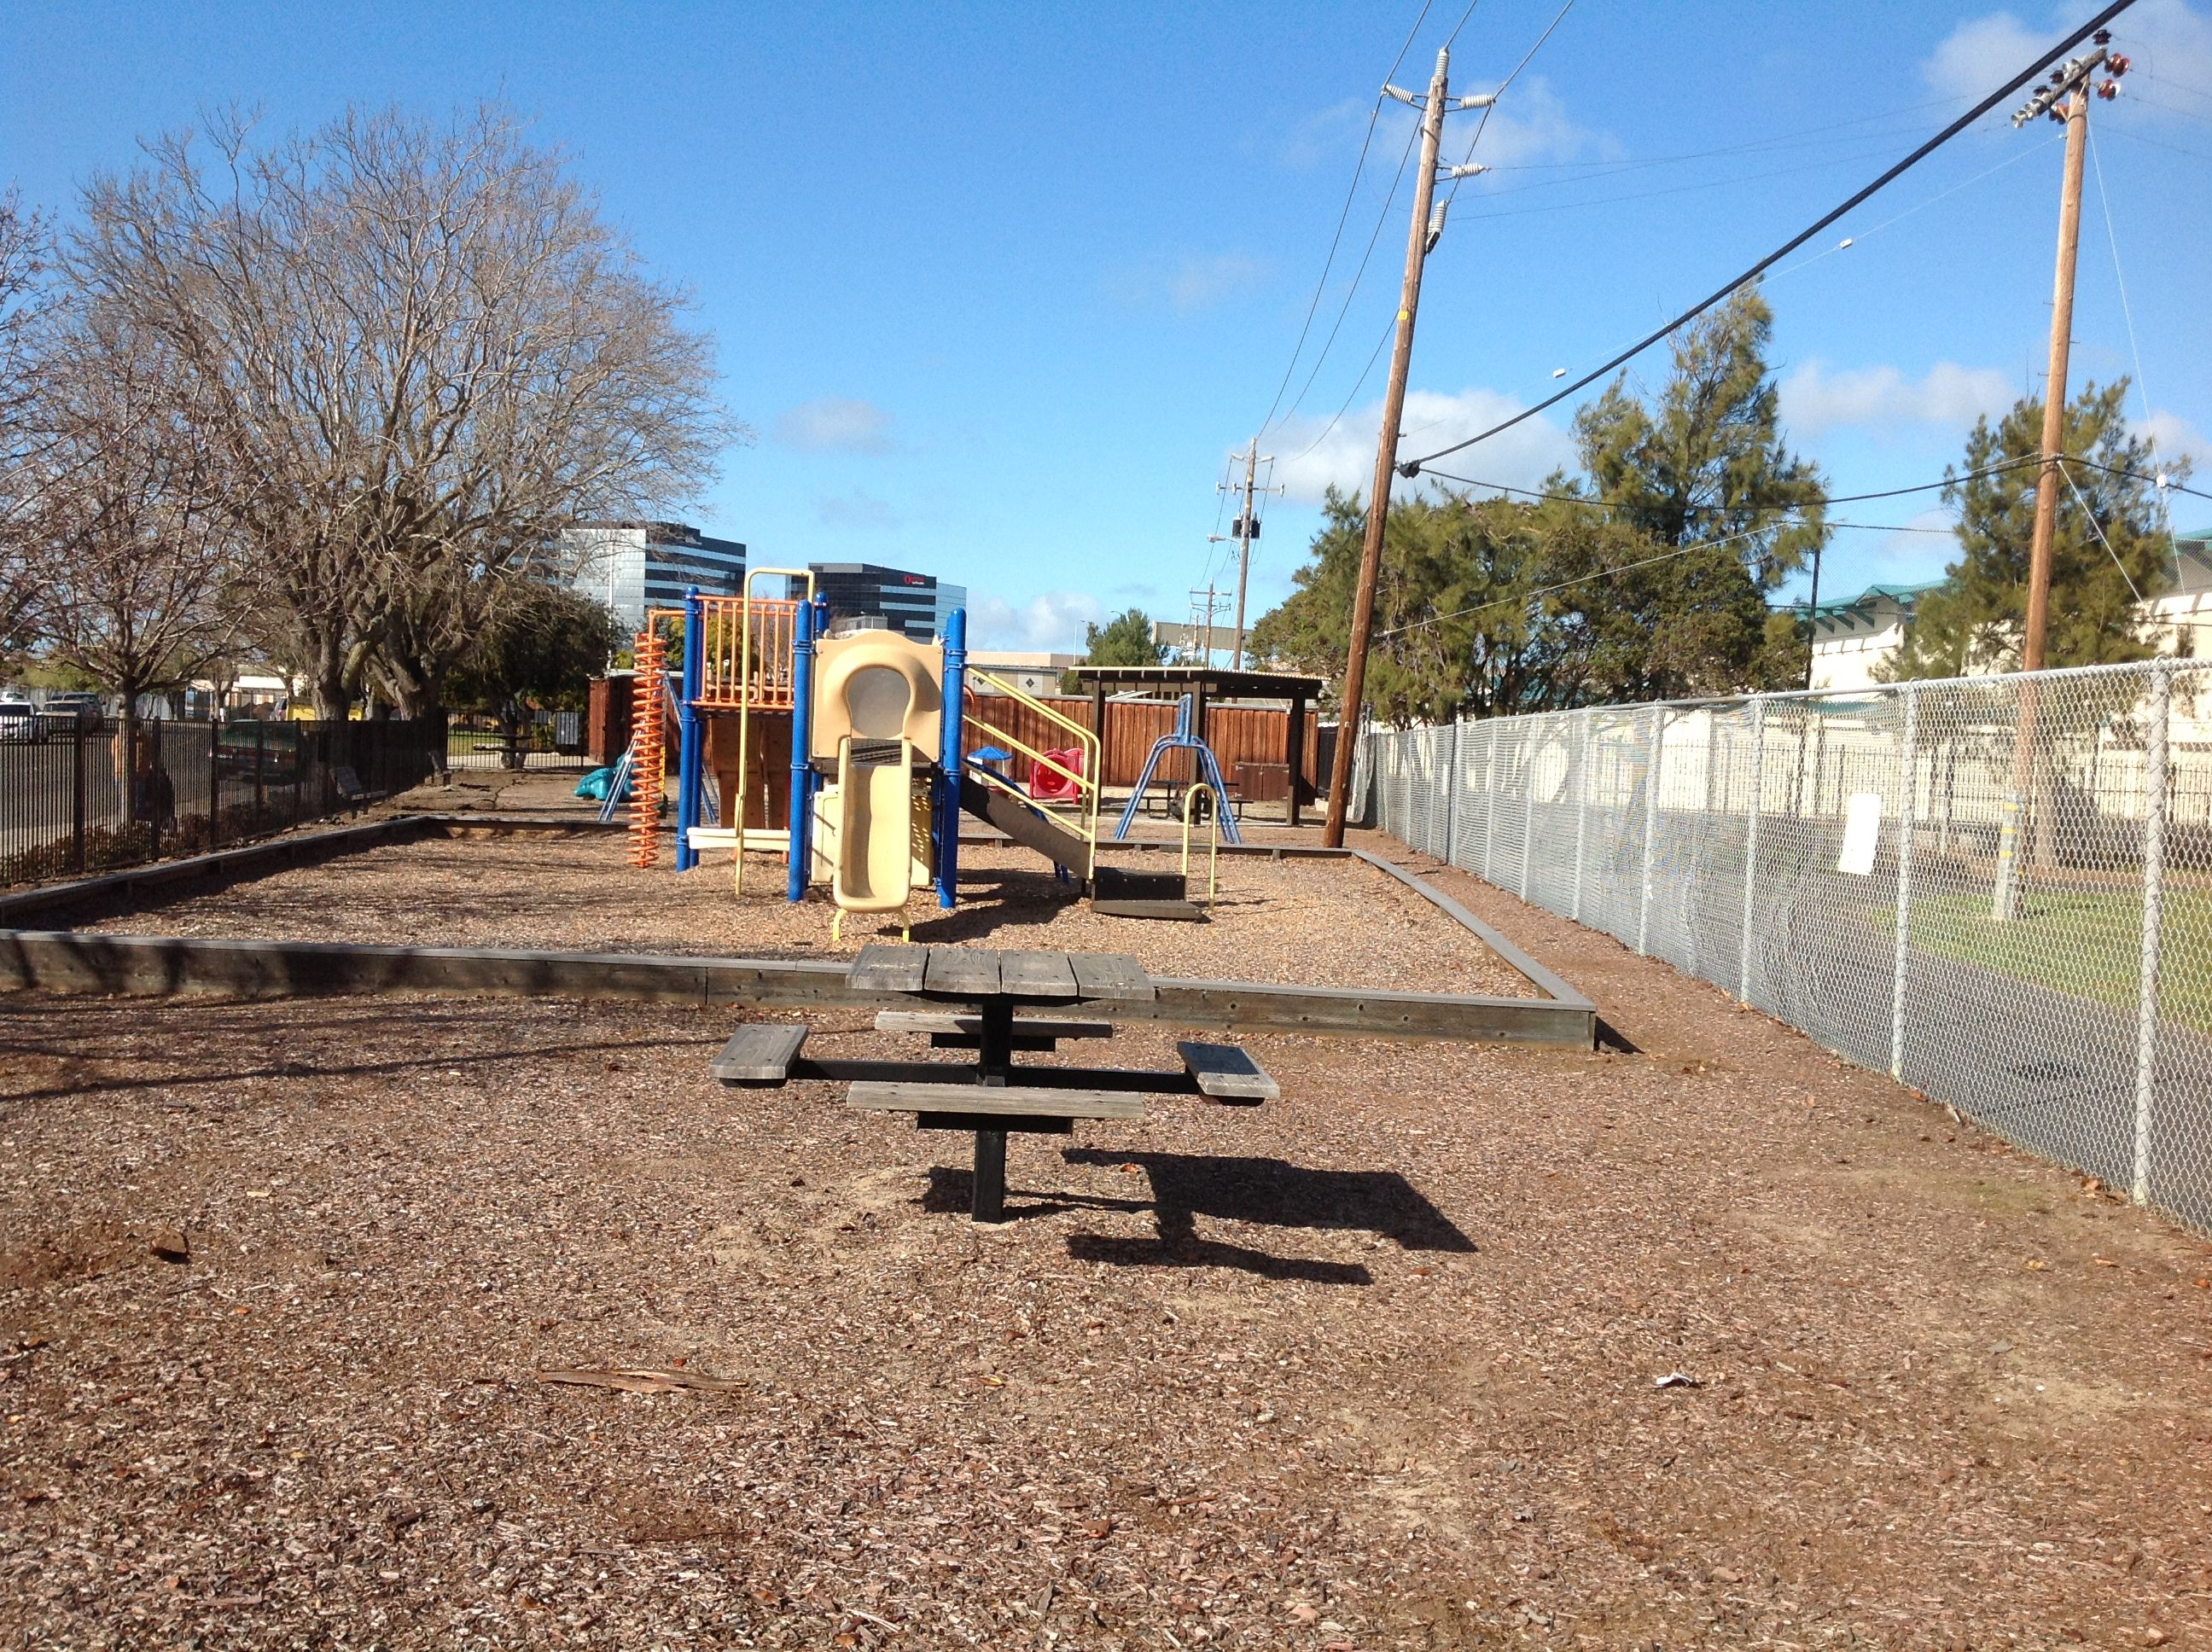 Here is the Local Fiesta Meadows Park, which is located in Fiesta ...